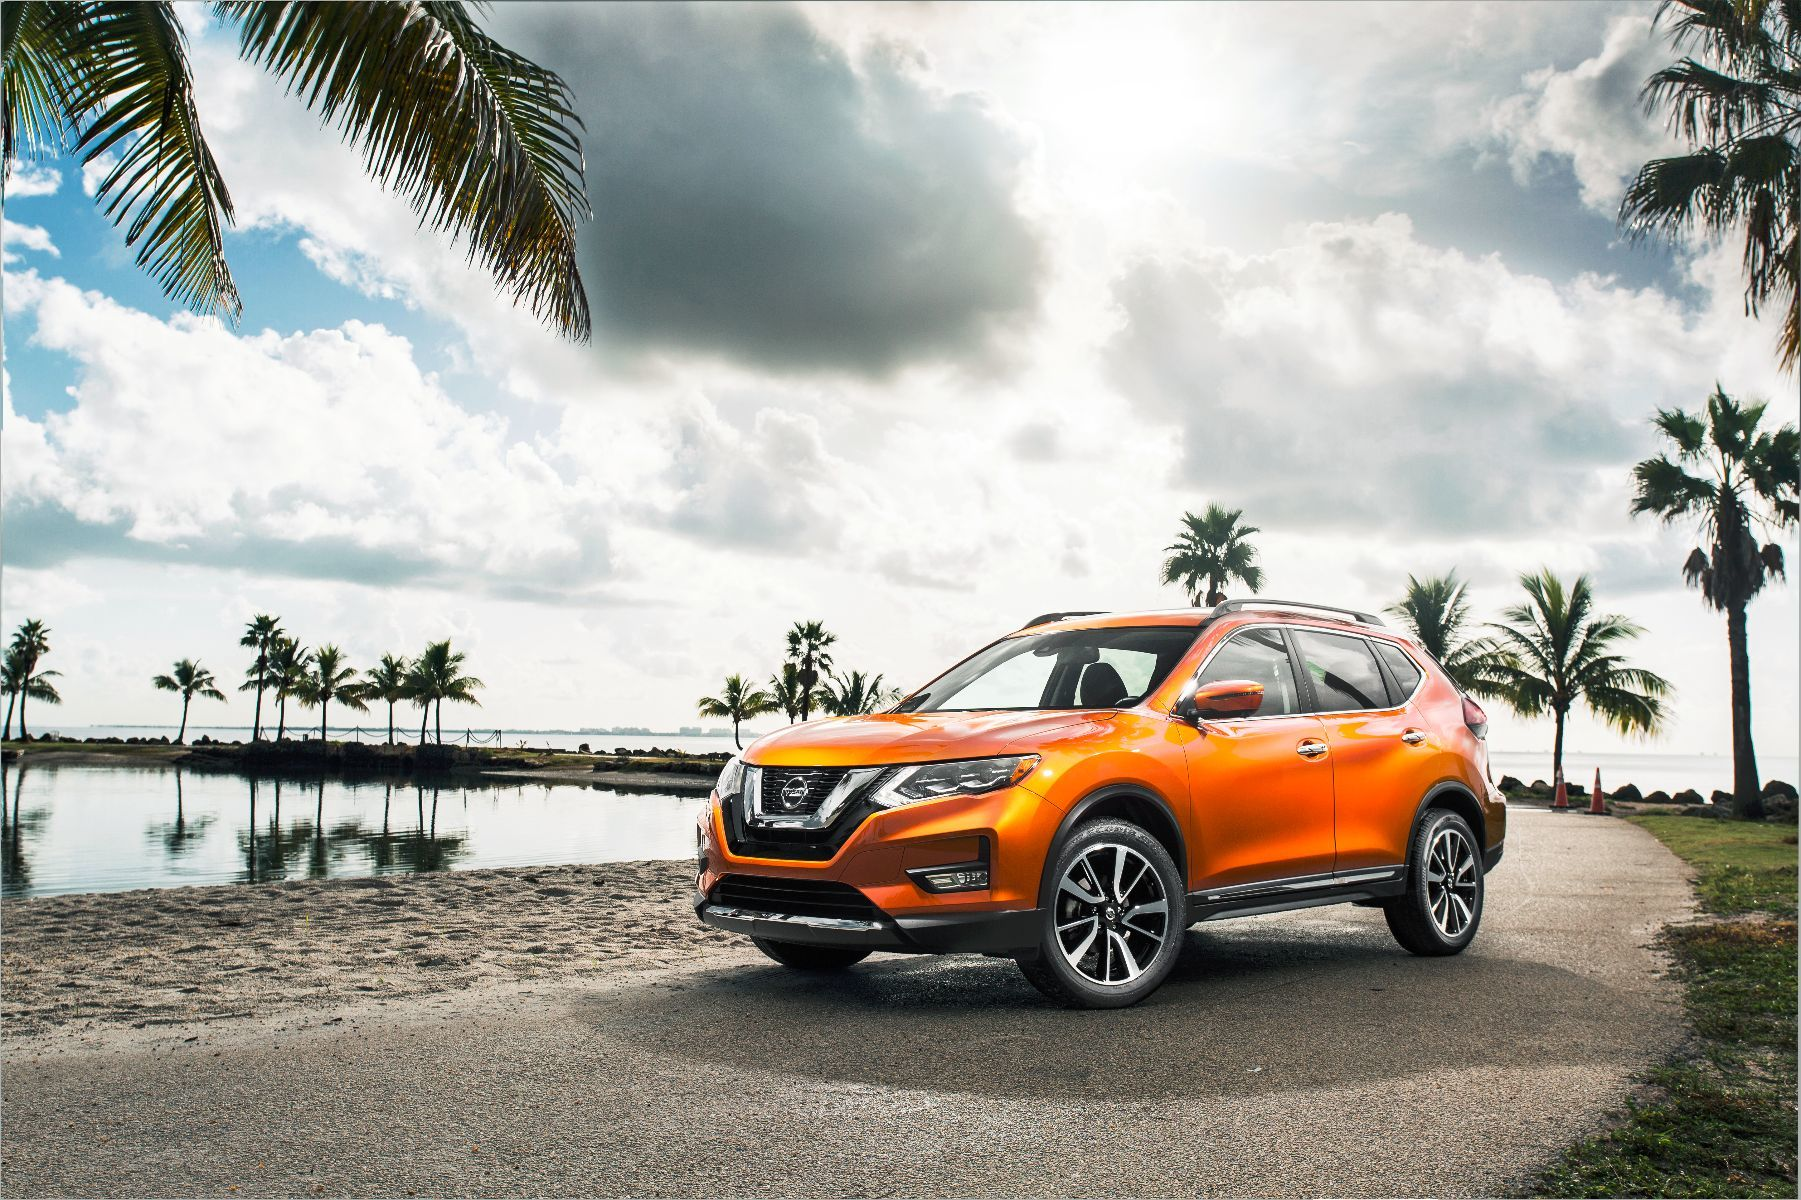 2017 Nissan Rogue: everything you need in a compact SUV